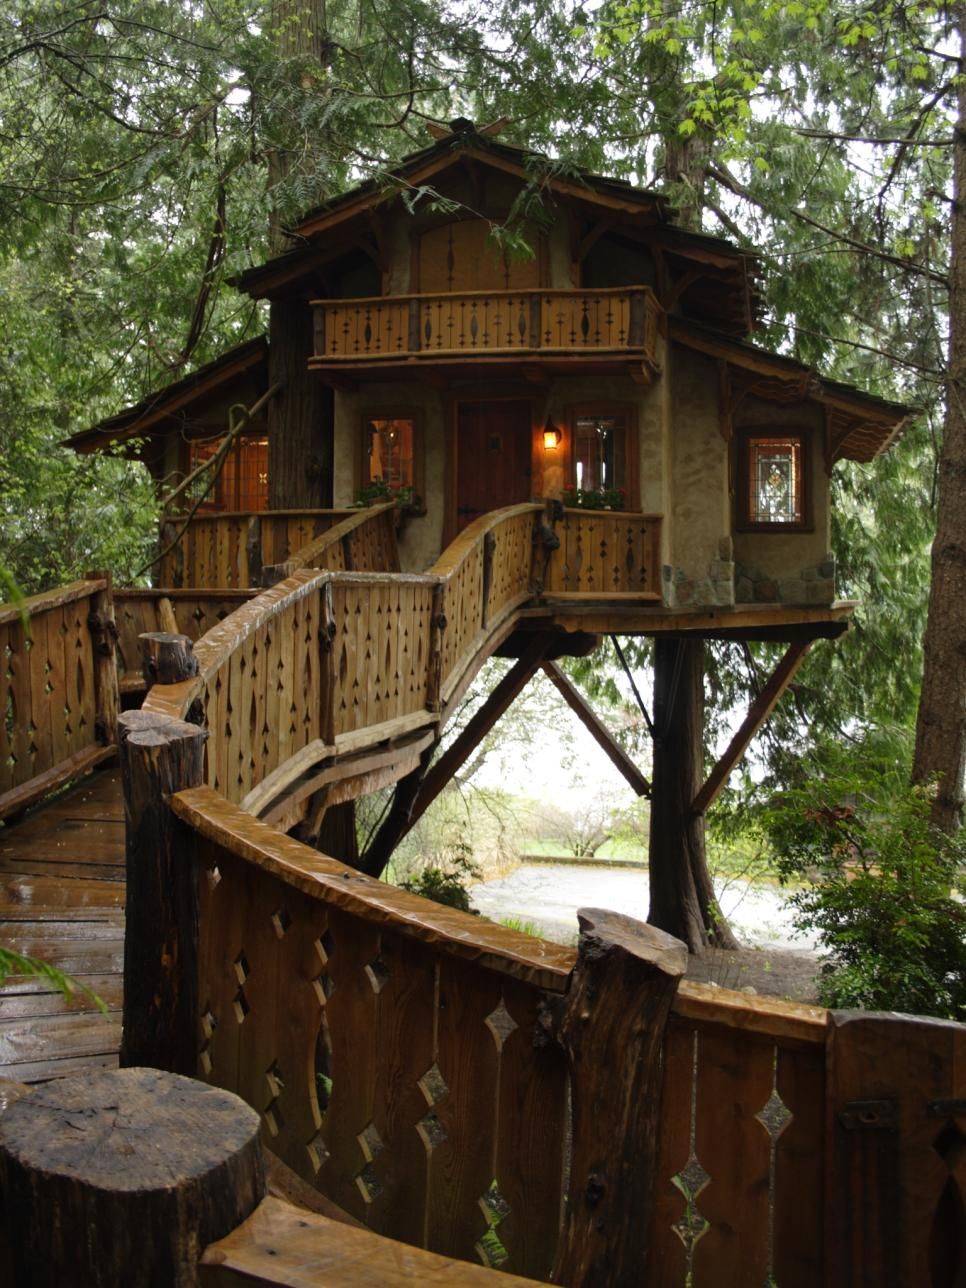 Home Design Ideas Construction: Get Ideas And Stories Behind Fabulous Treehouse Designs